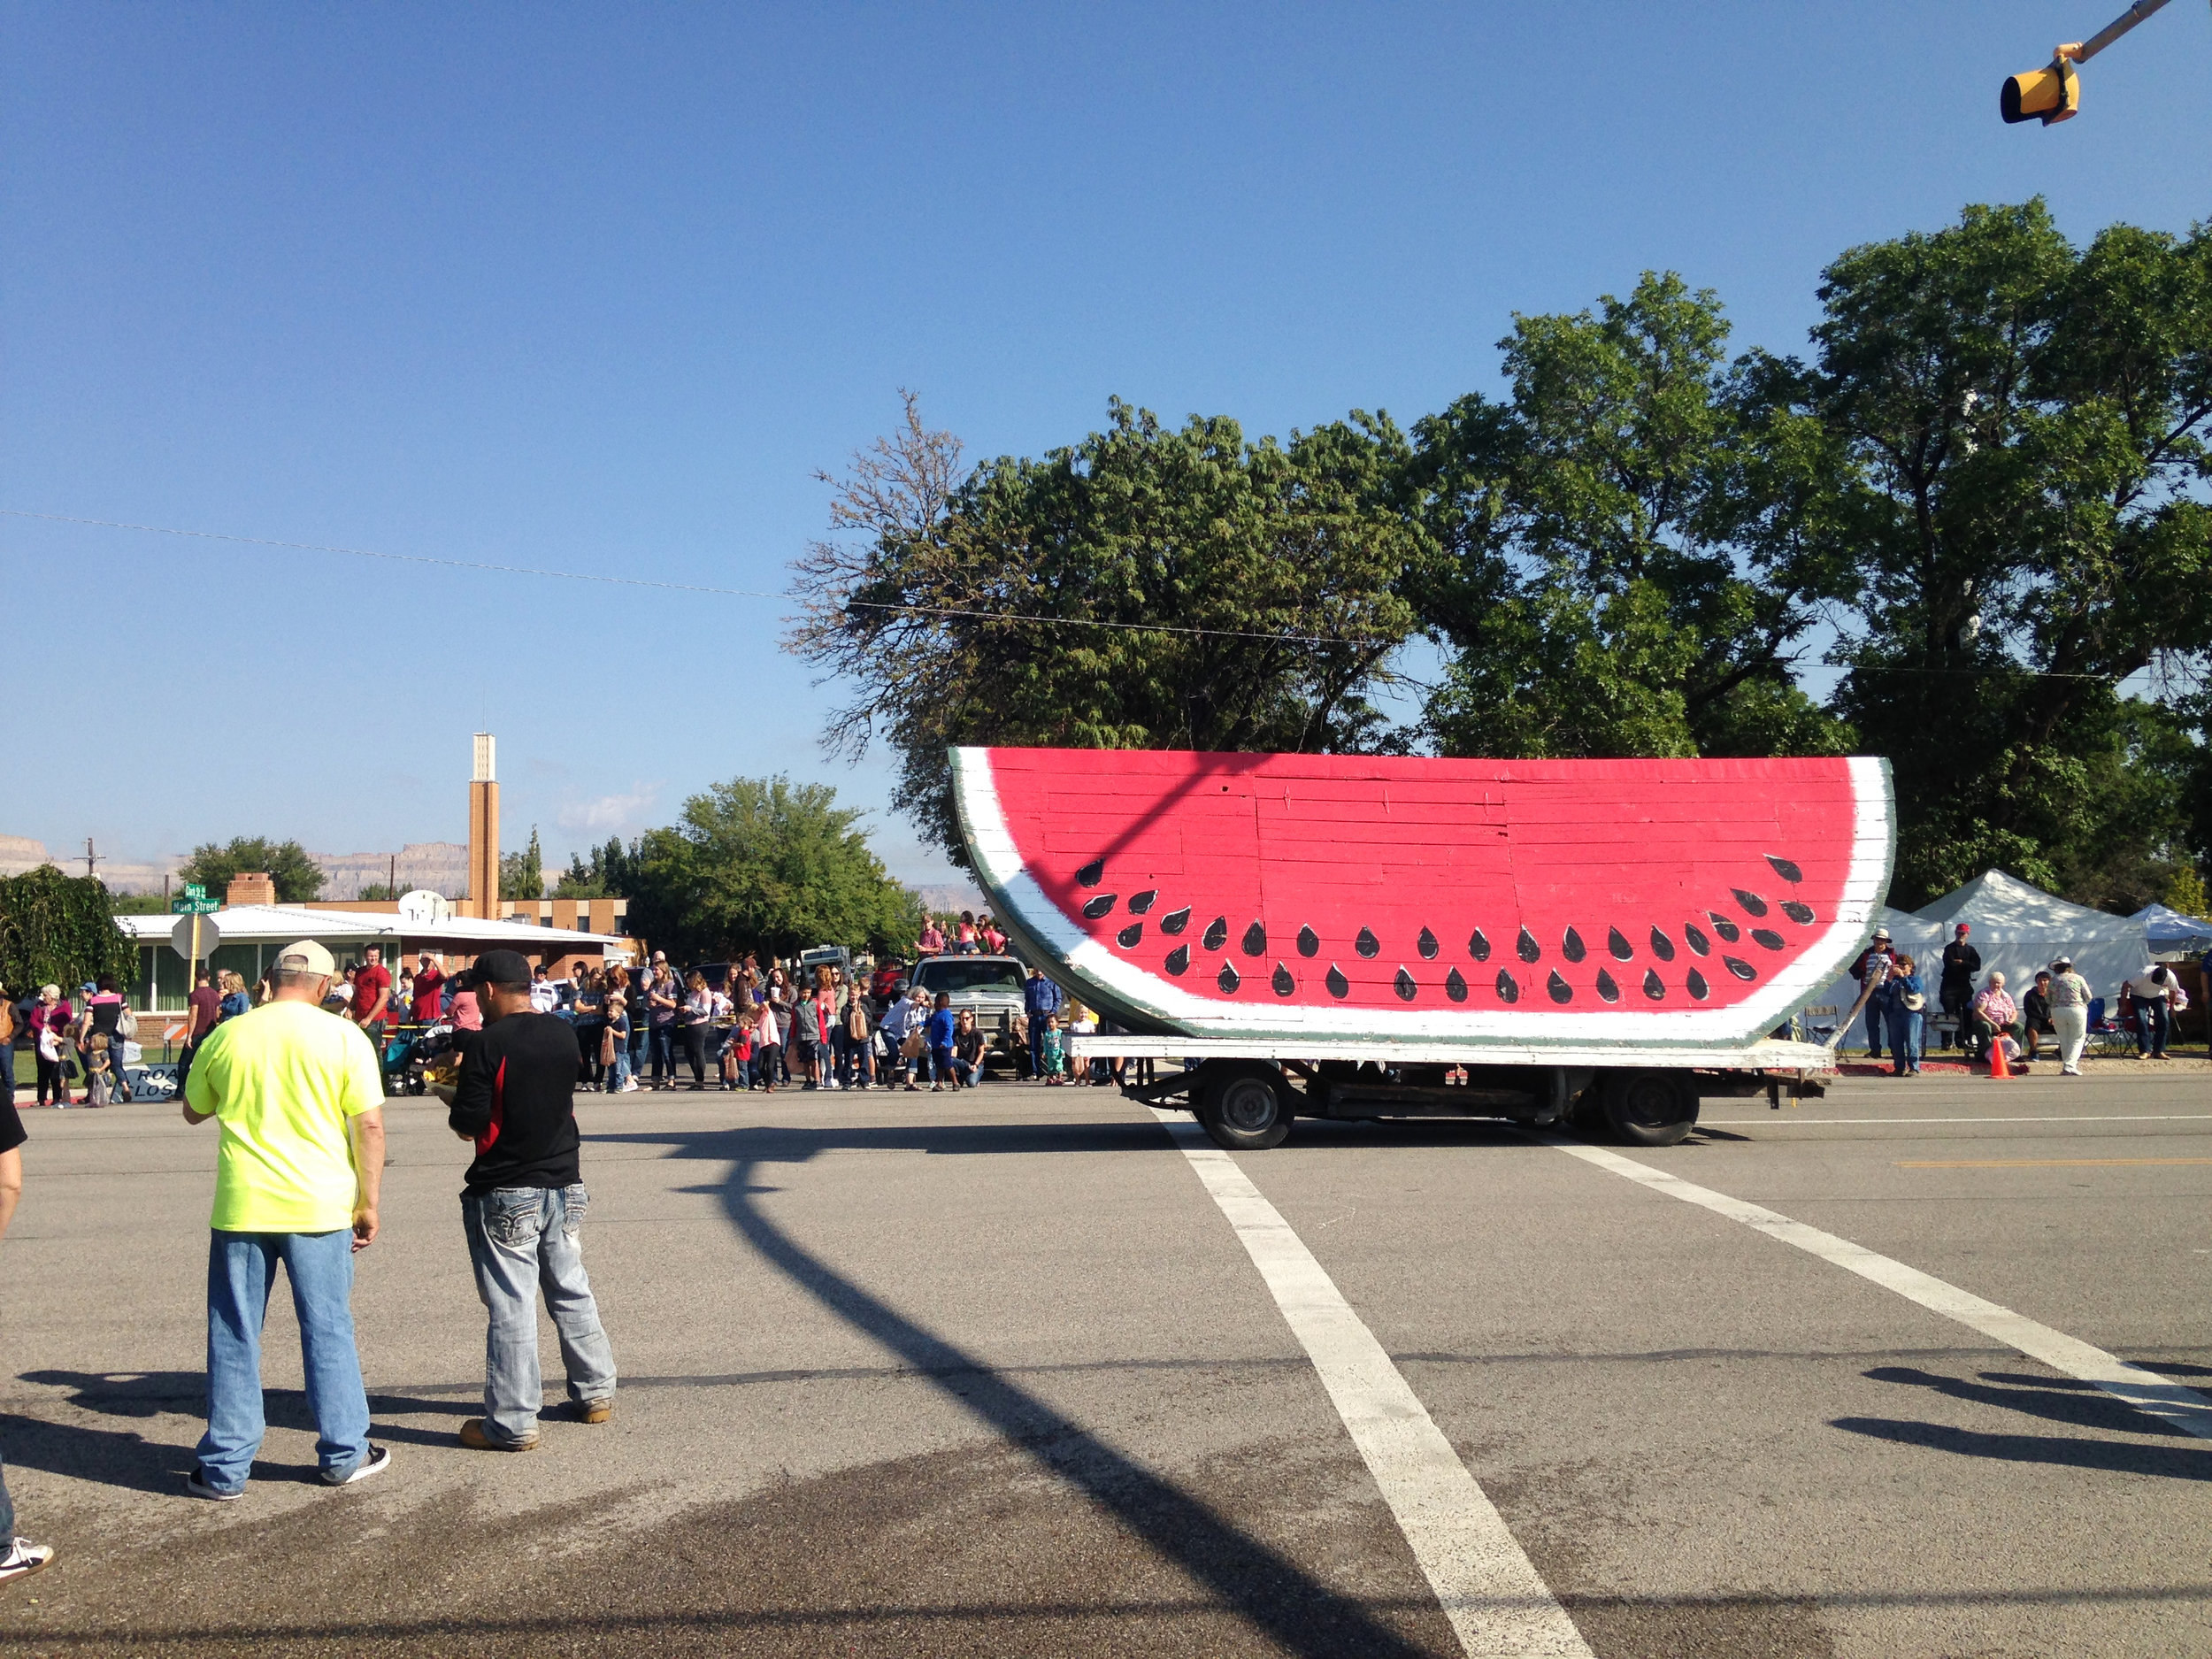 """""""The World's Largest Watermelon,"""" previously a snack hut, rides in the Melon Days parade every year."""